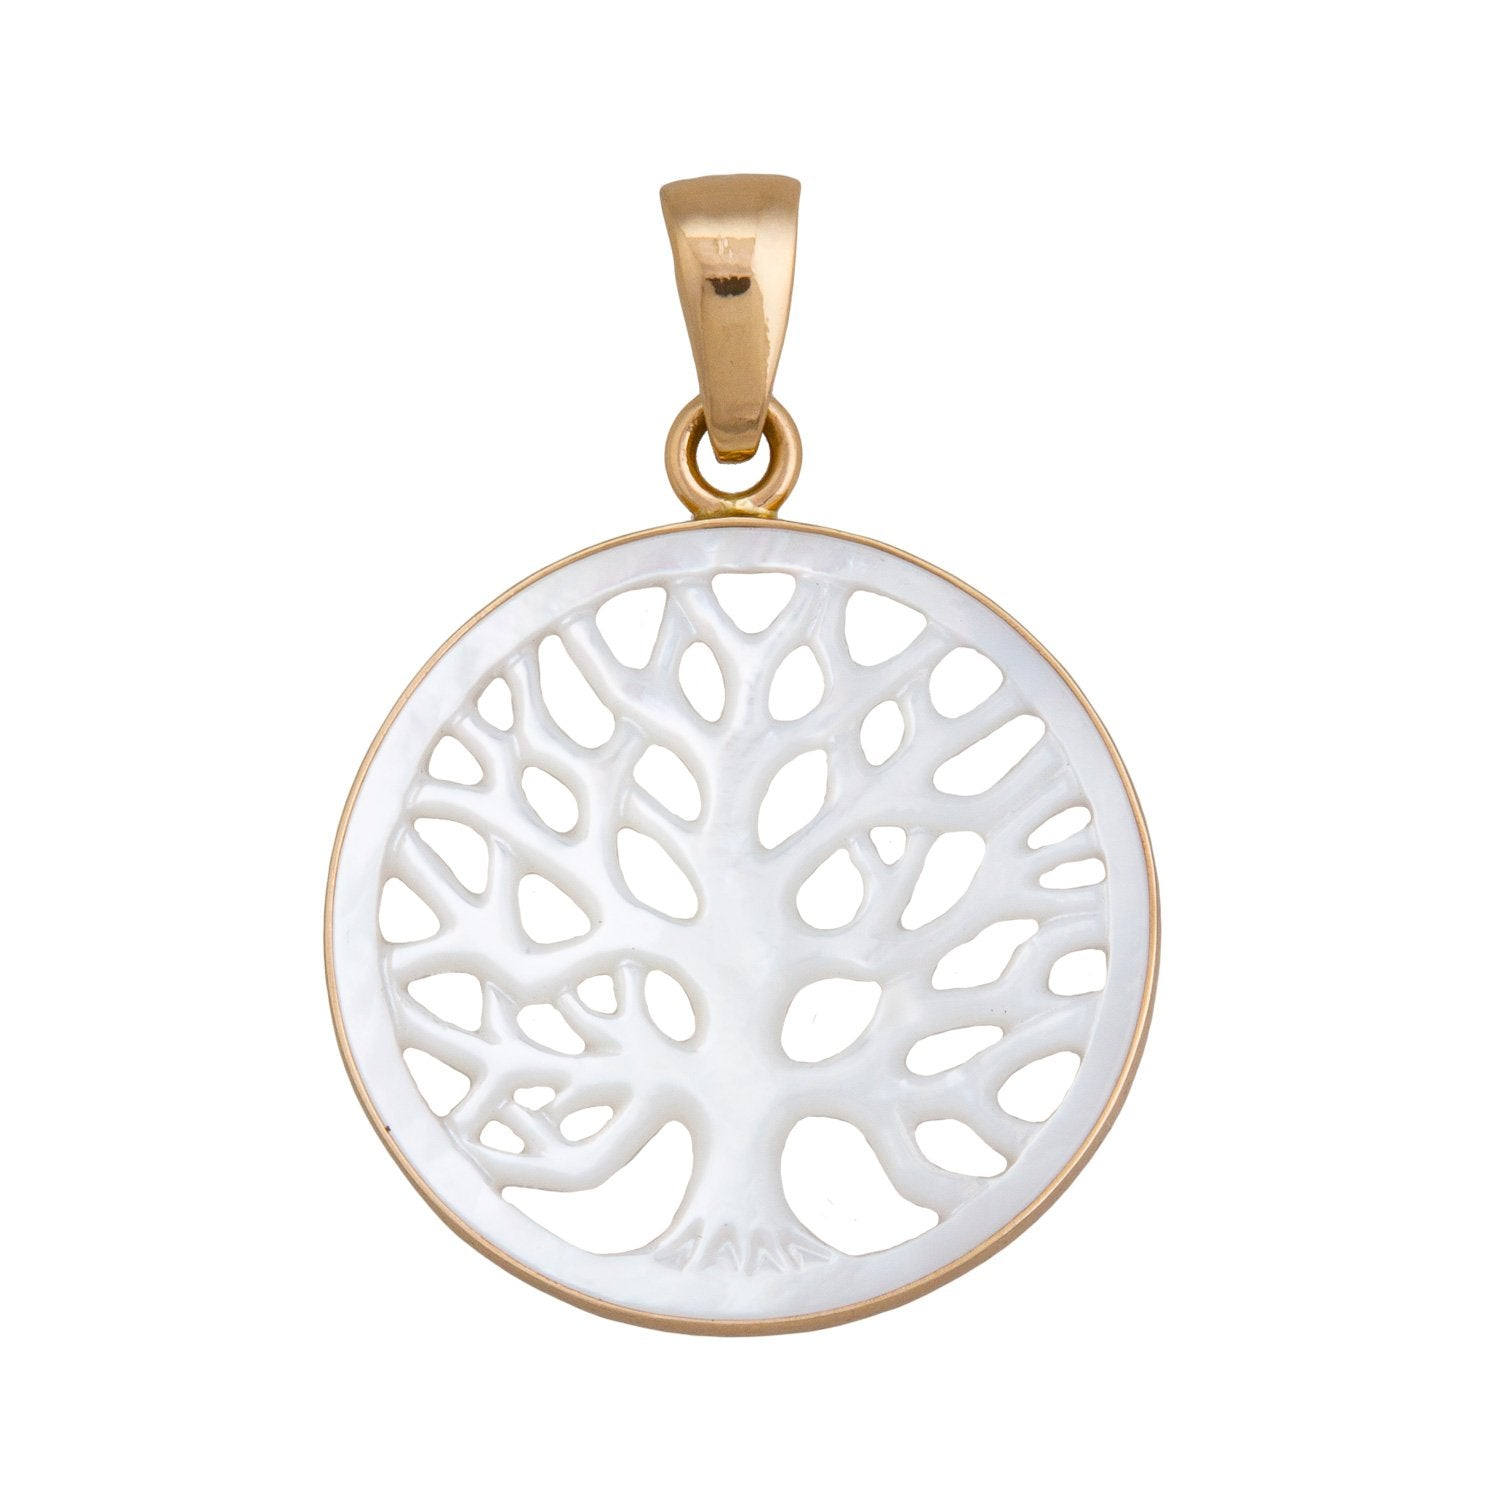 Alchemia 40mm Mother of Pearl Tree of Life Pendant